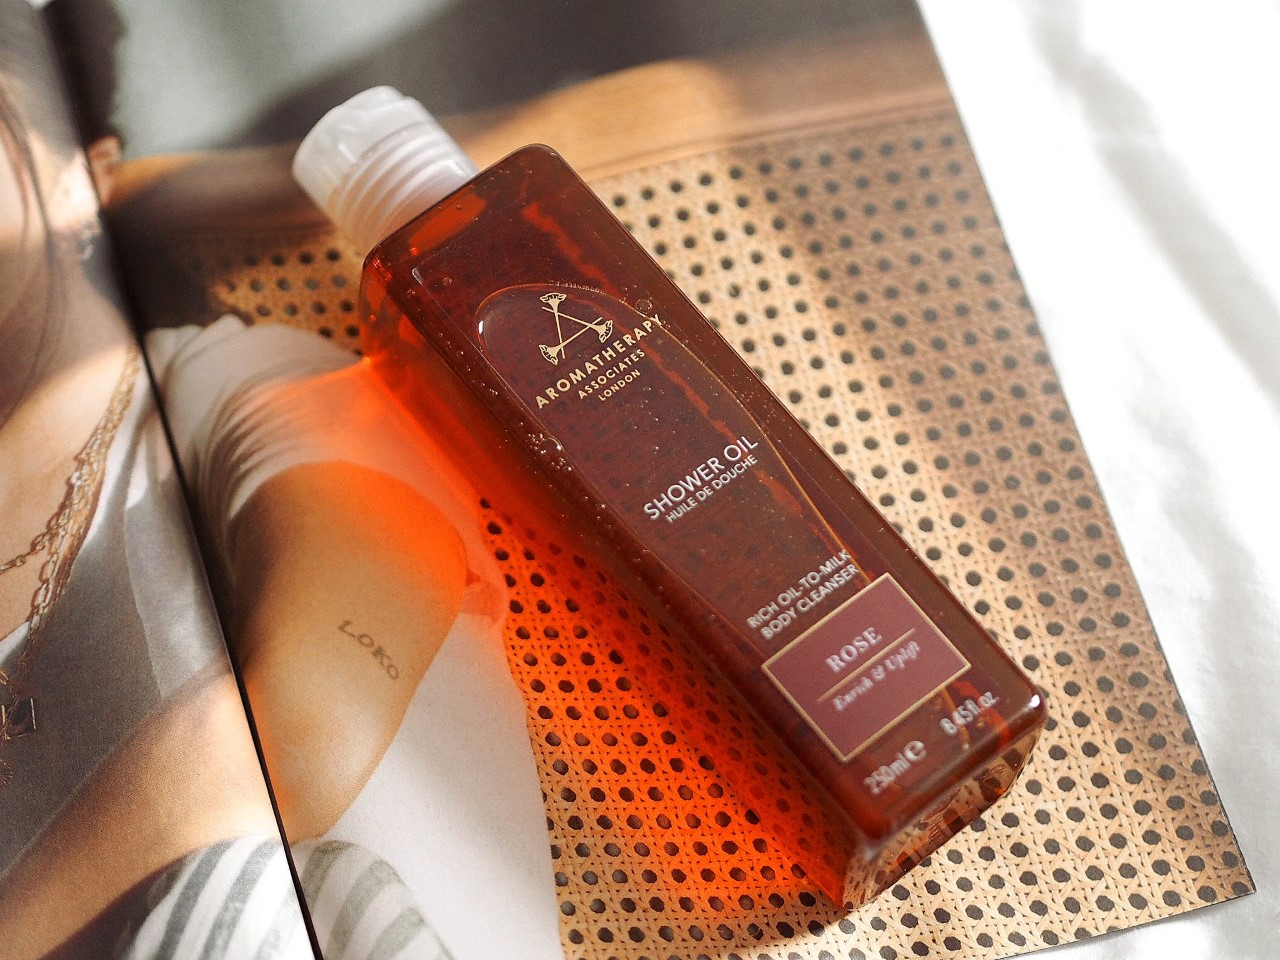 Aromatherapy Associates Shower Oil review how to use